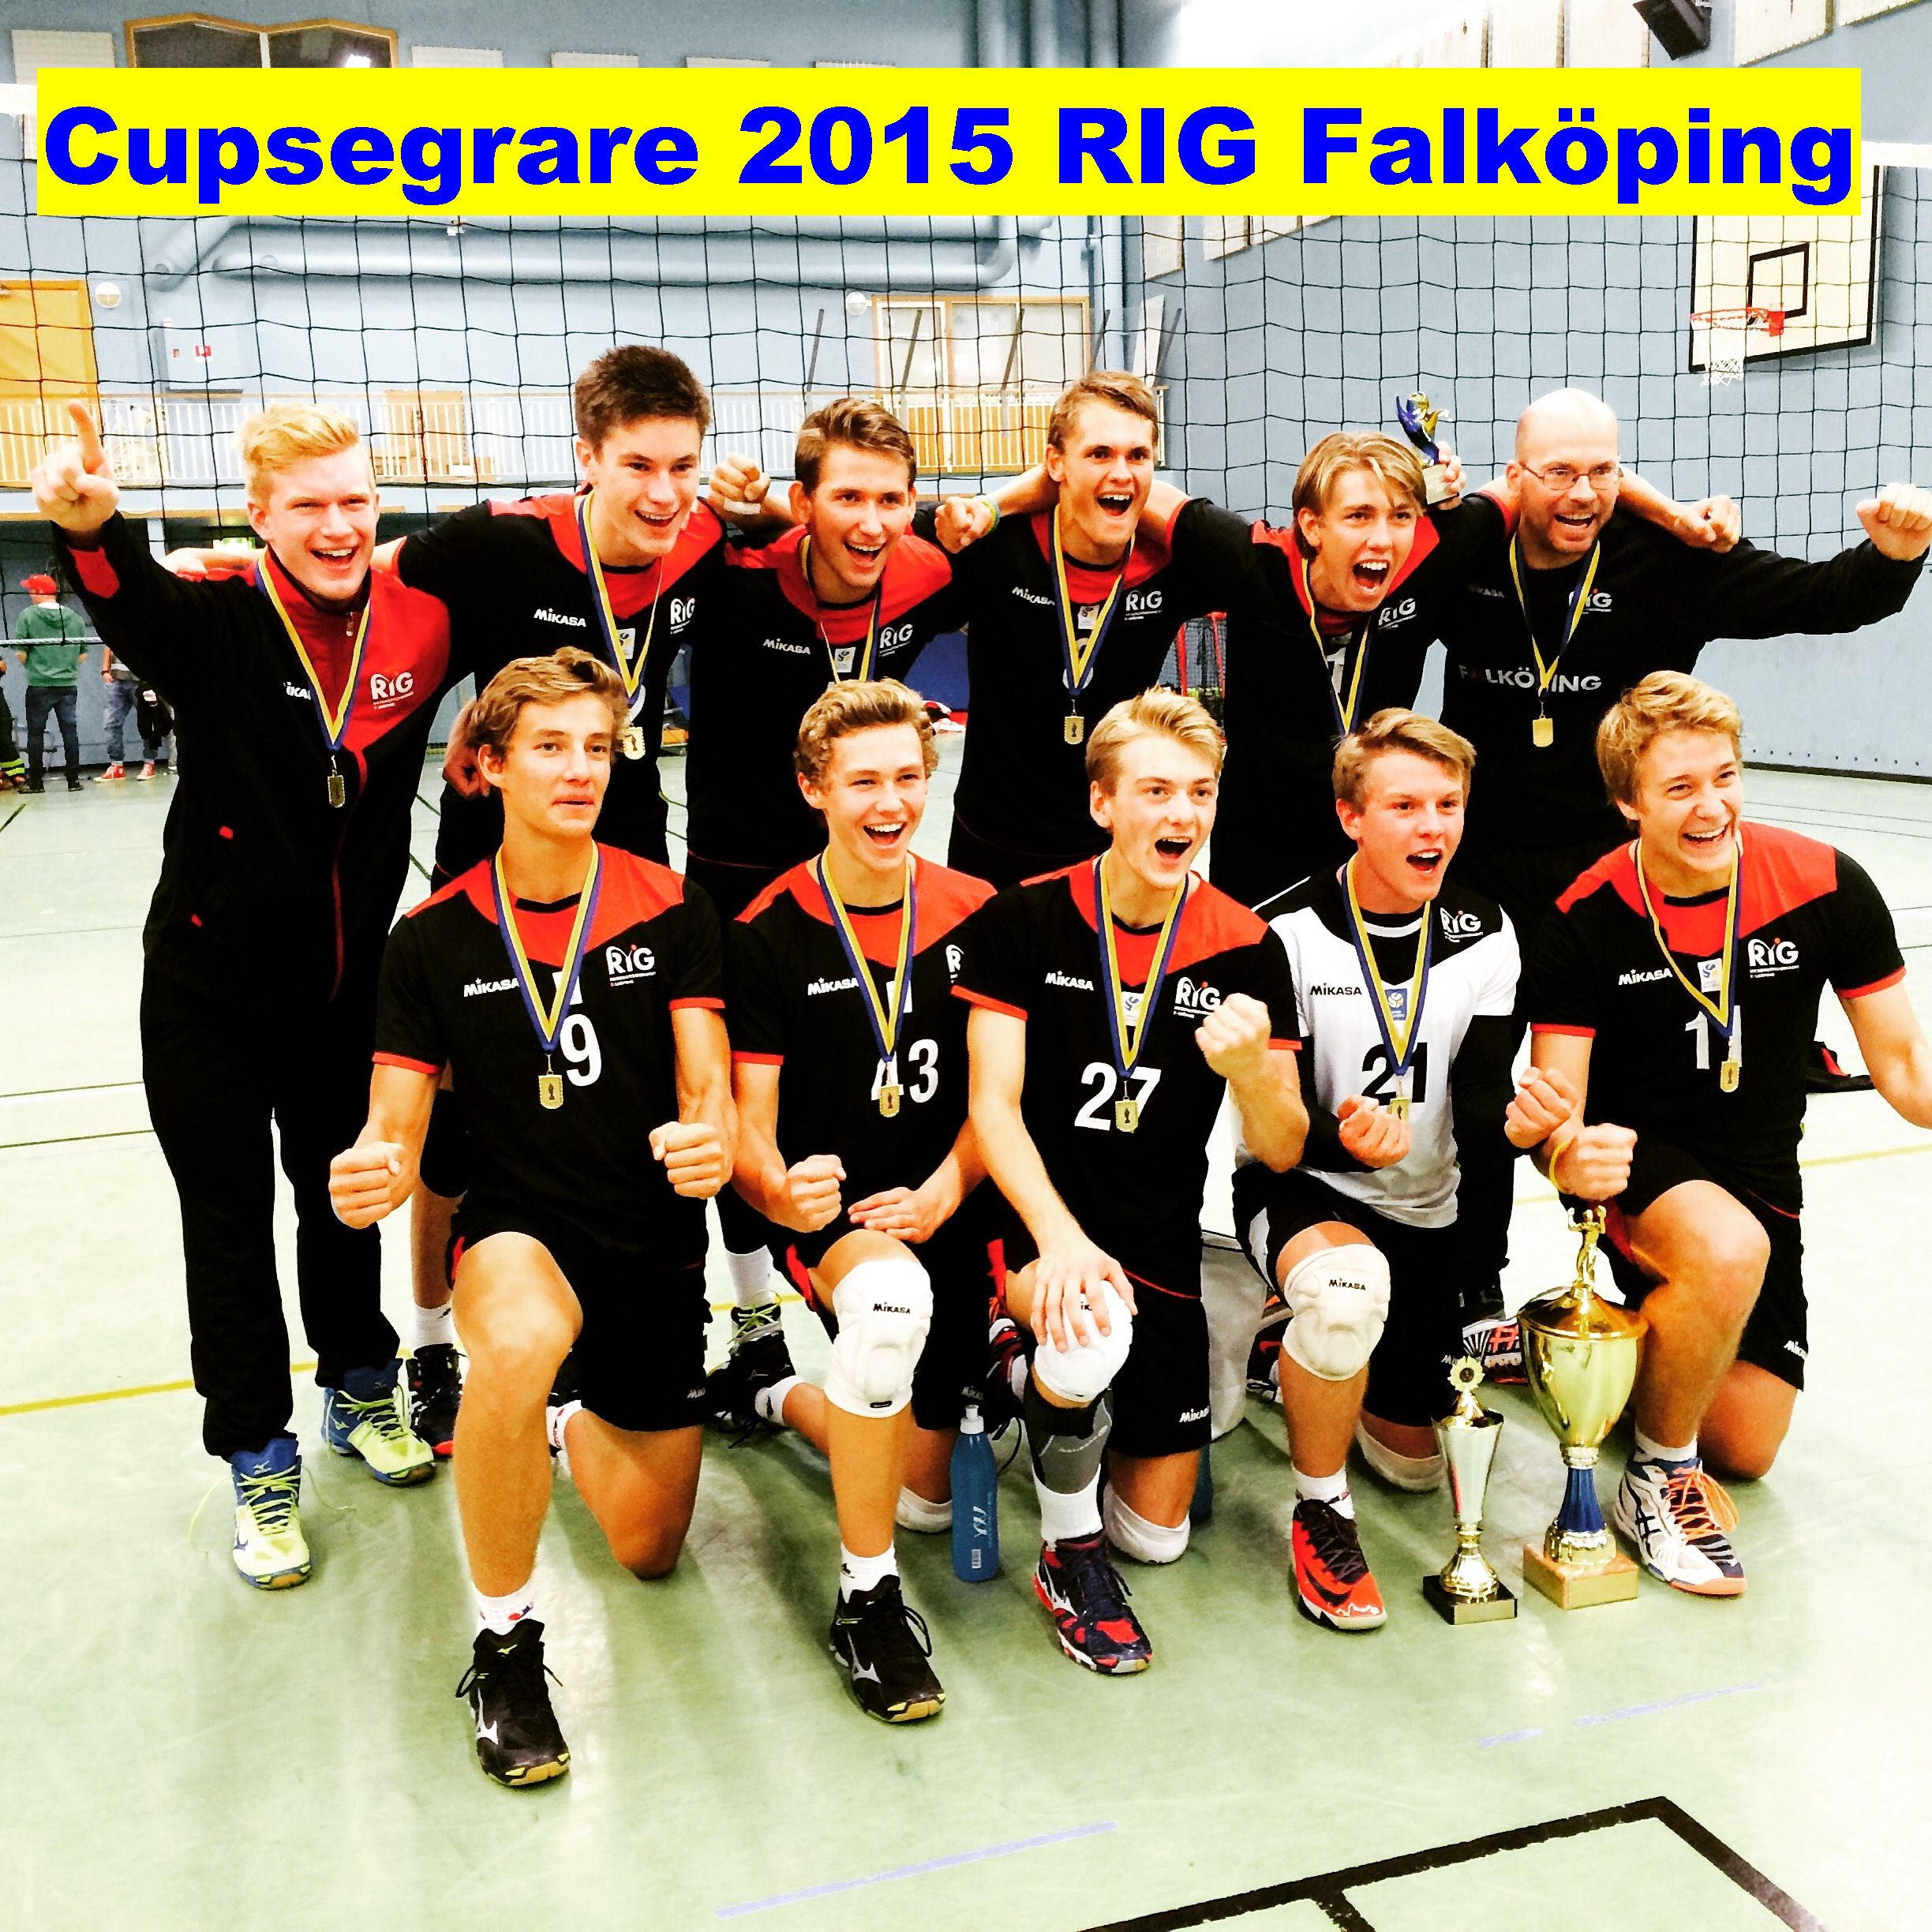 Cupsegrare 2015 RIG H text